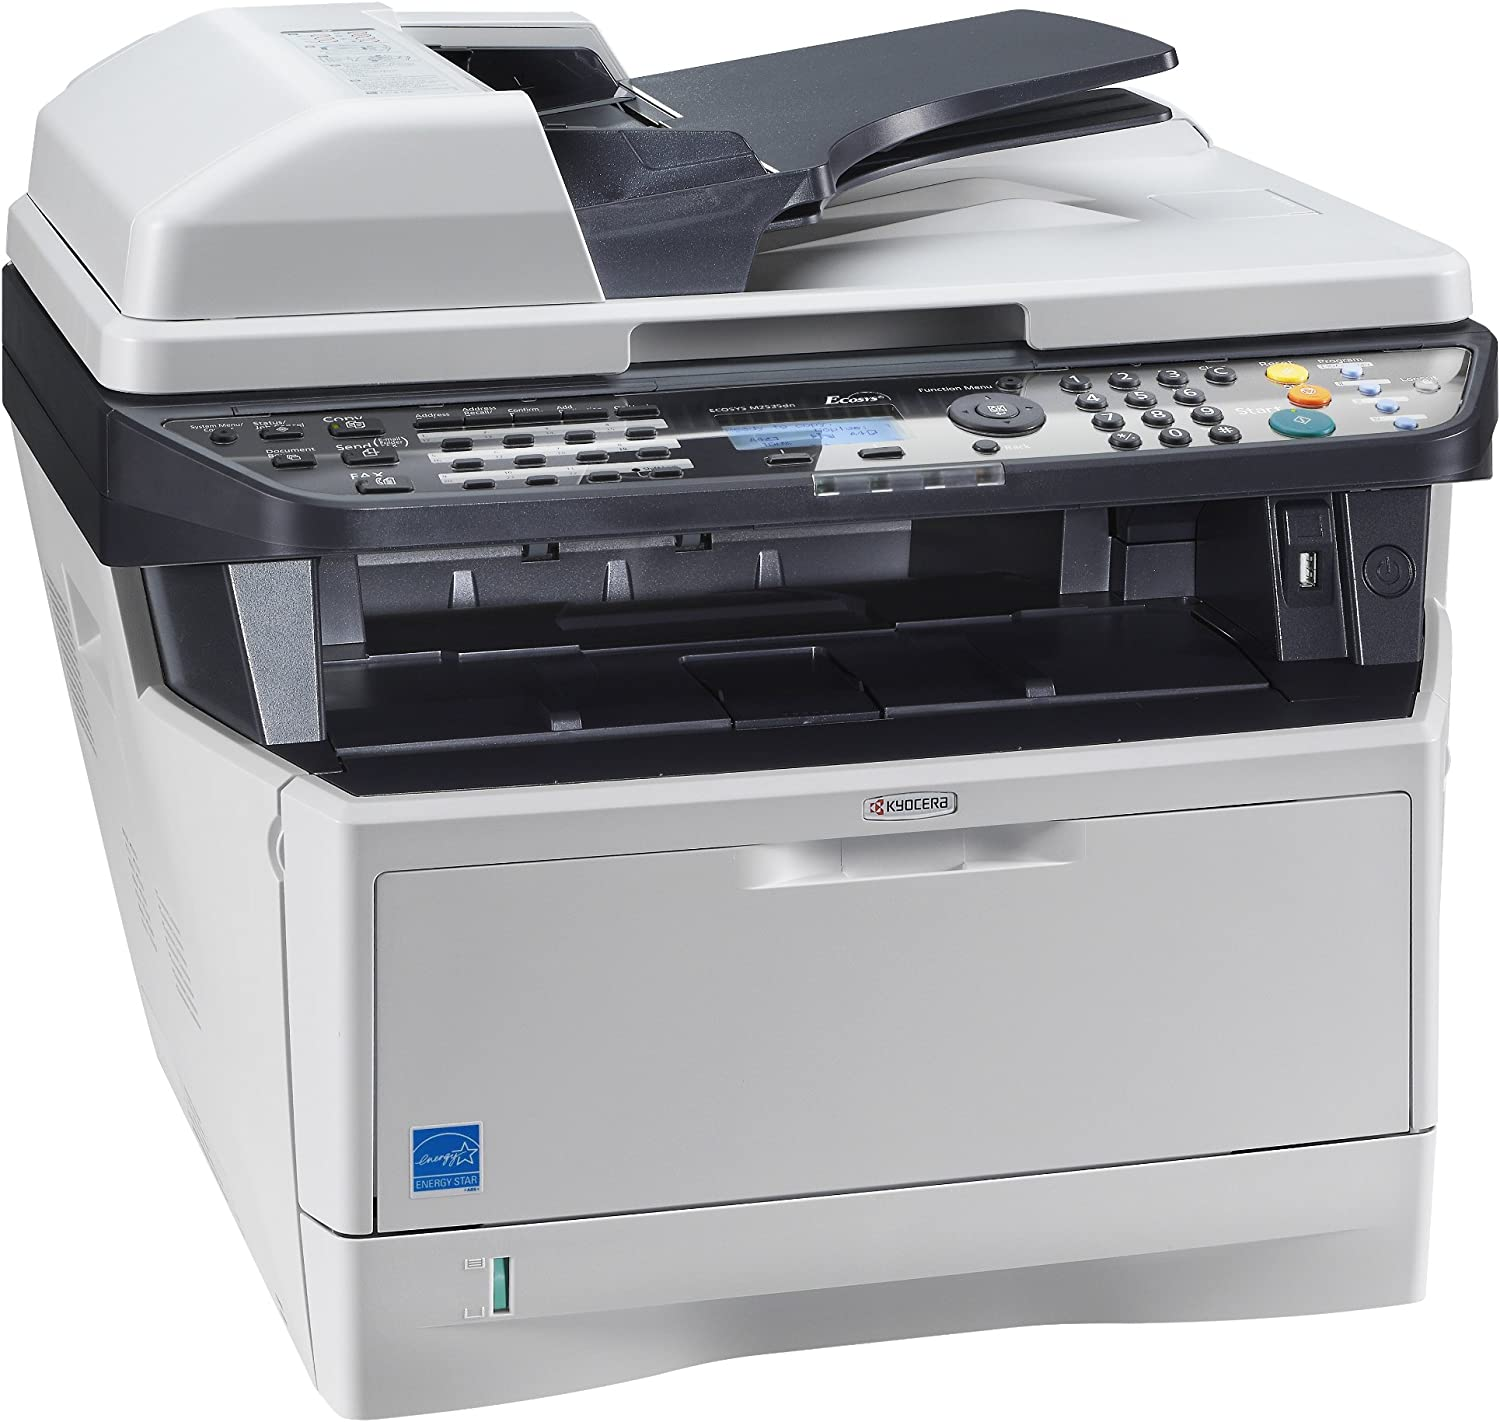 Kyocera 550PN550US50 ECOSYS M550535dn Black and White Multifunctional Network  Printer; Standard Print, Copy, Fax and Color Scan; Fast Output Speed of 50